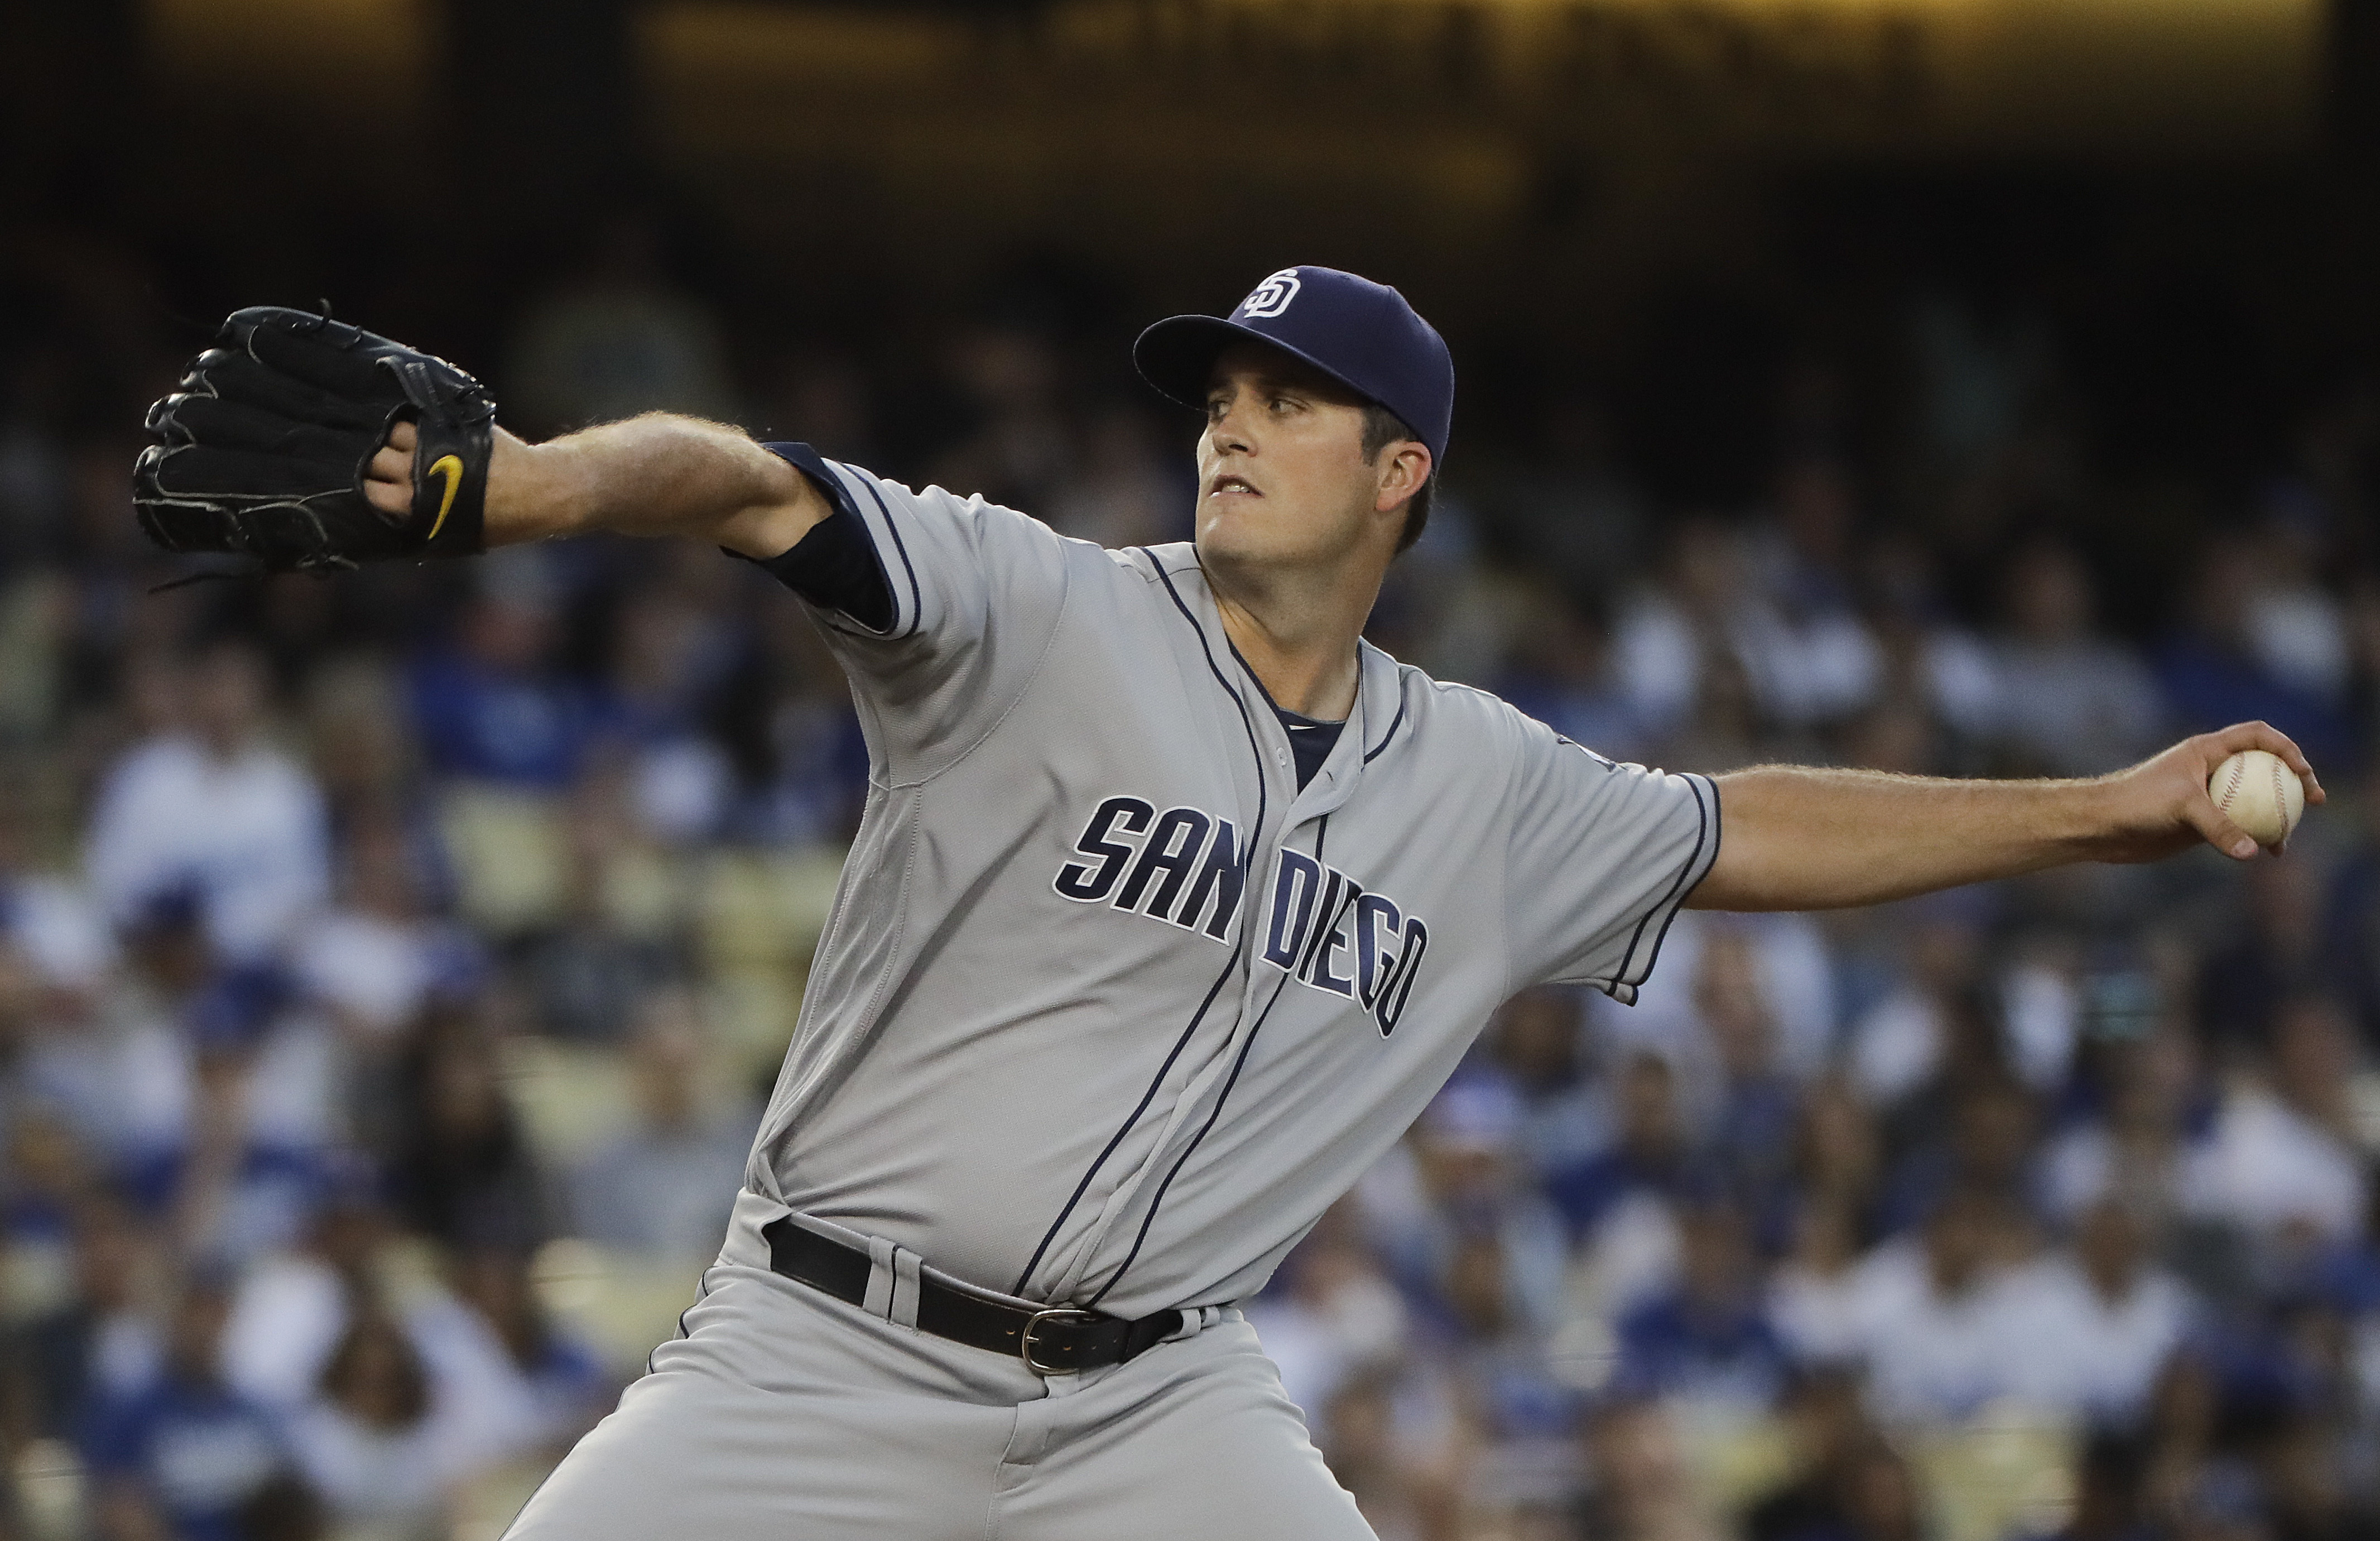 San Diego Padres starting pitcher Drew Pomeranz throws against the Los Angeles Dodgers during the second inning of a baseball game, Thursday, July 7, 2016, in Los Angeles. (AP Photo/Jae C. Hong)